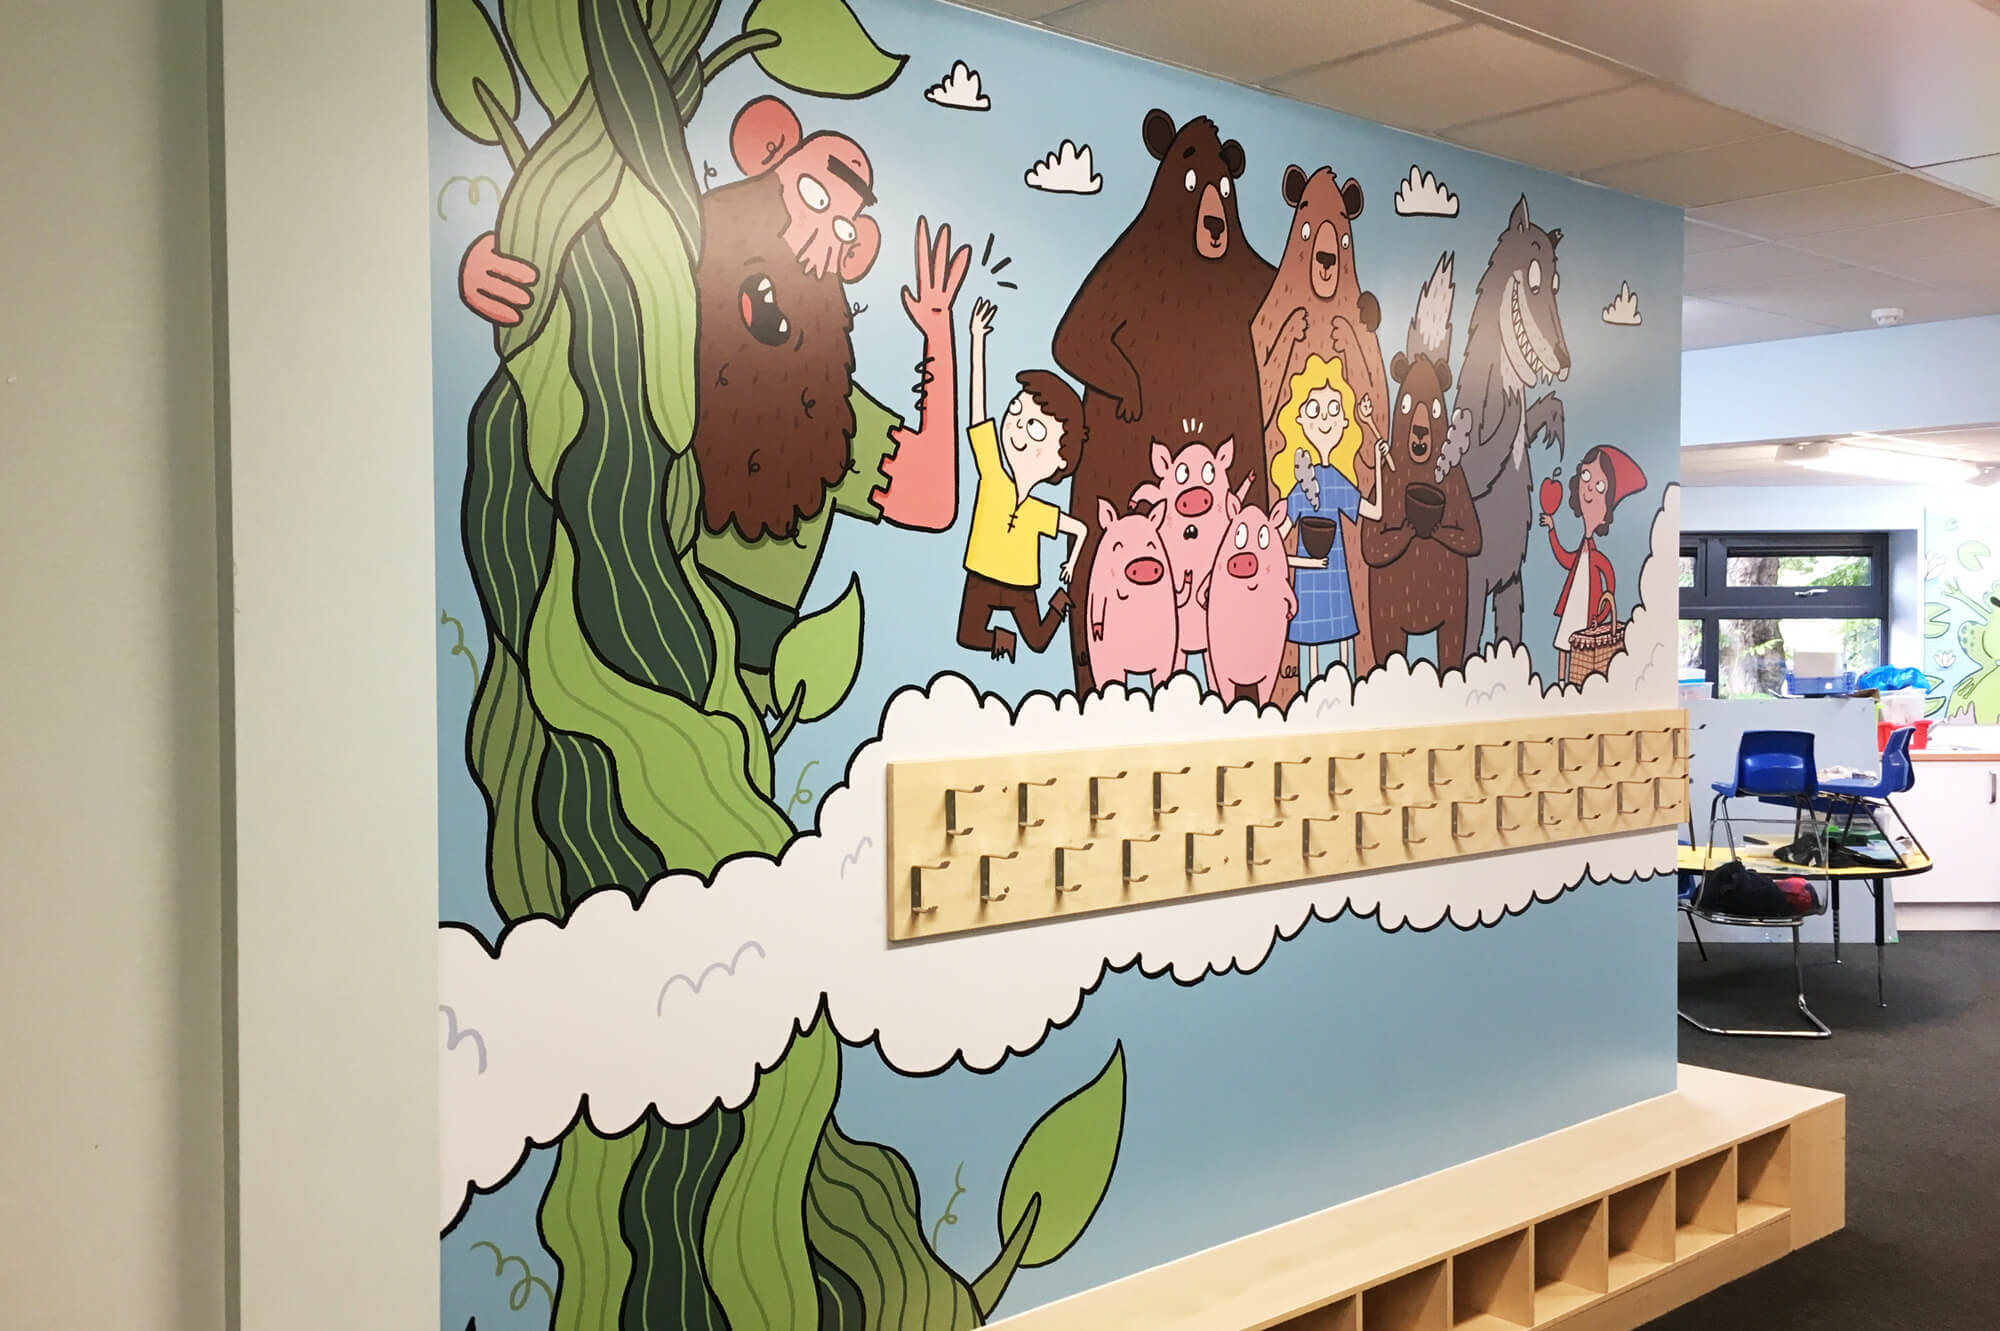 sacred_heart_primary_traditional_tales_wallgraphics_08.jpg